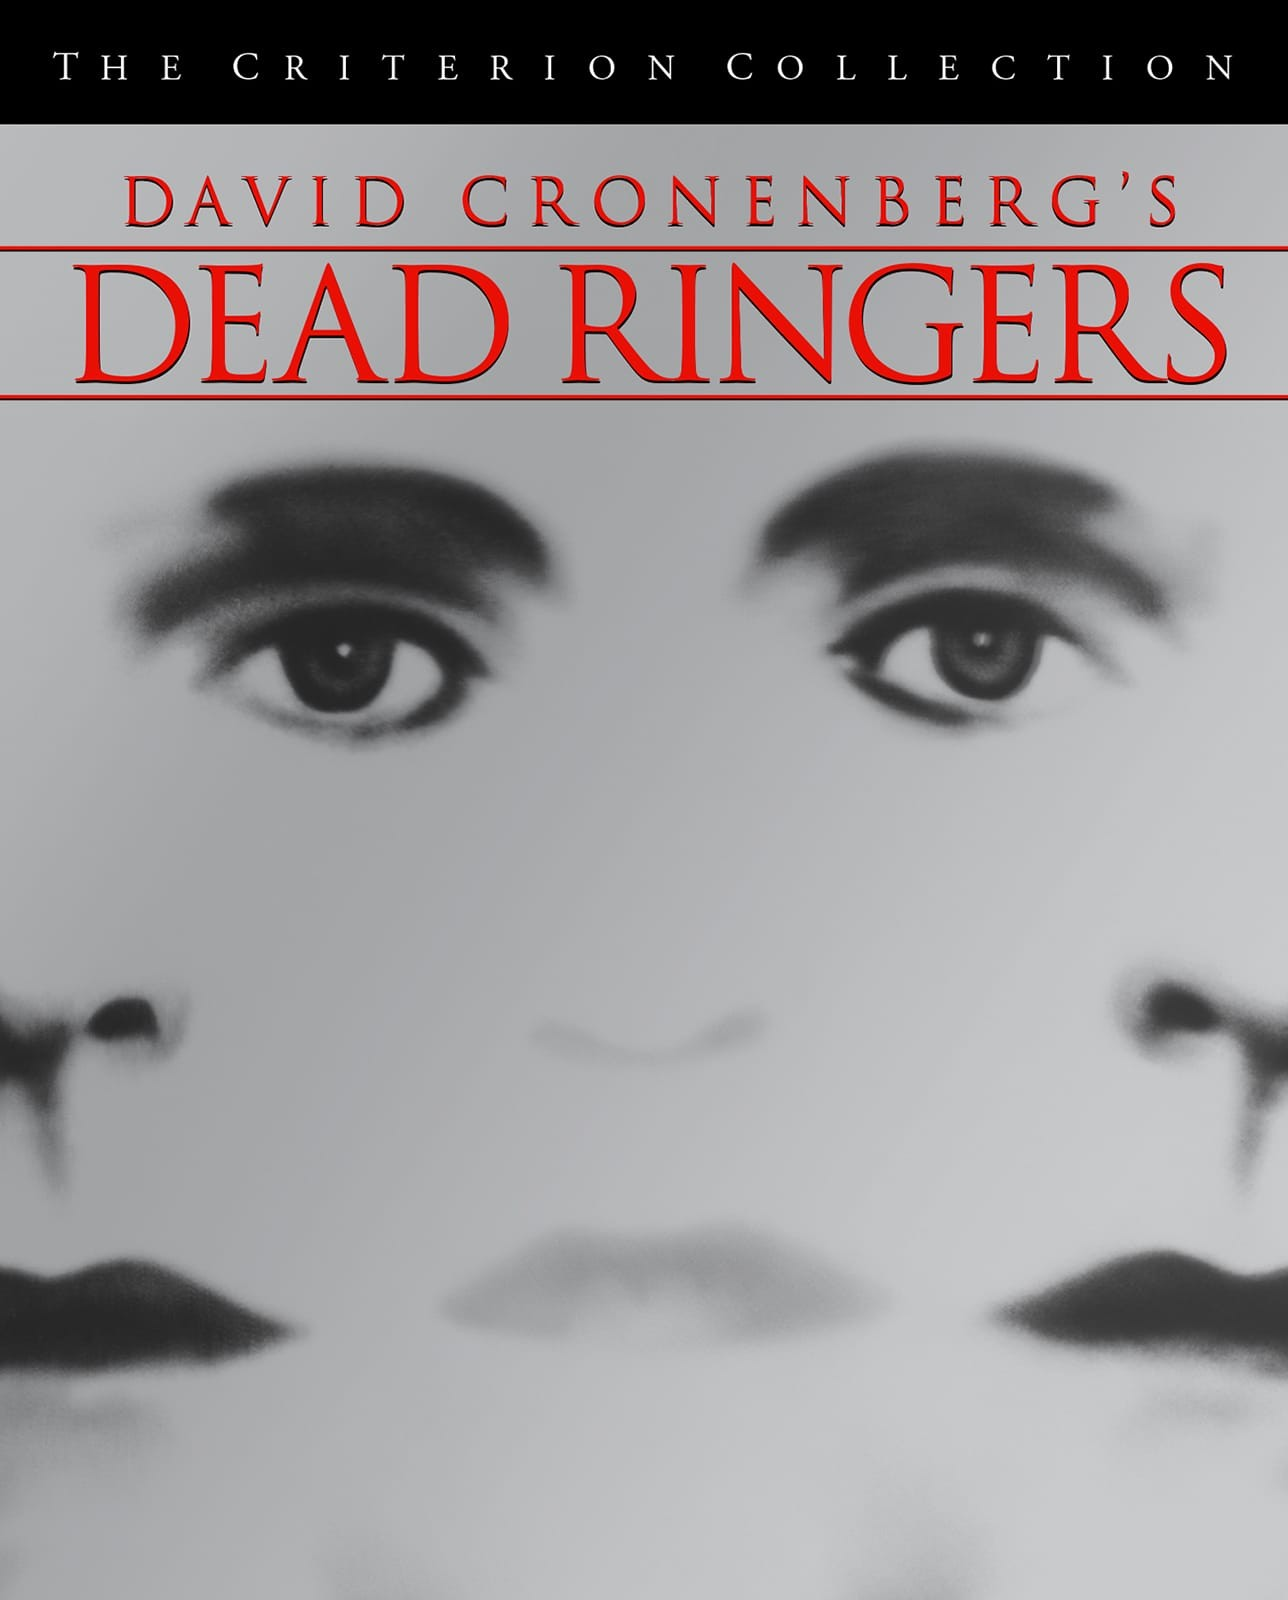 Image result for dead ringers criterion